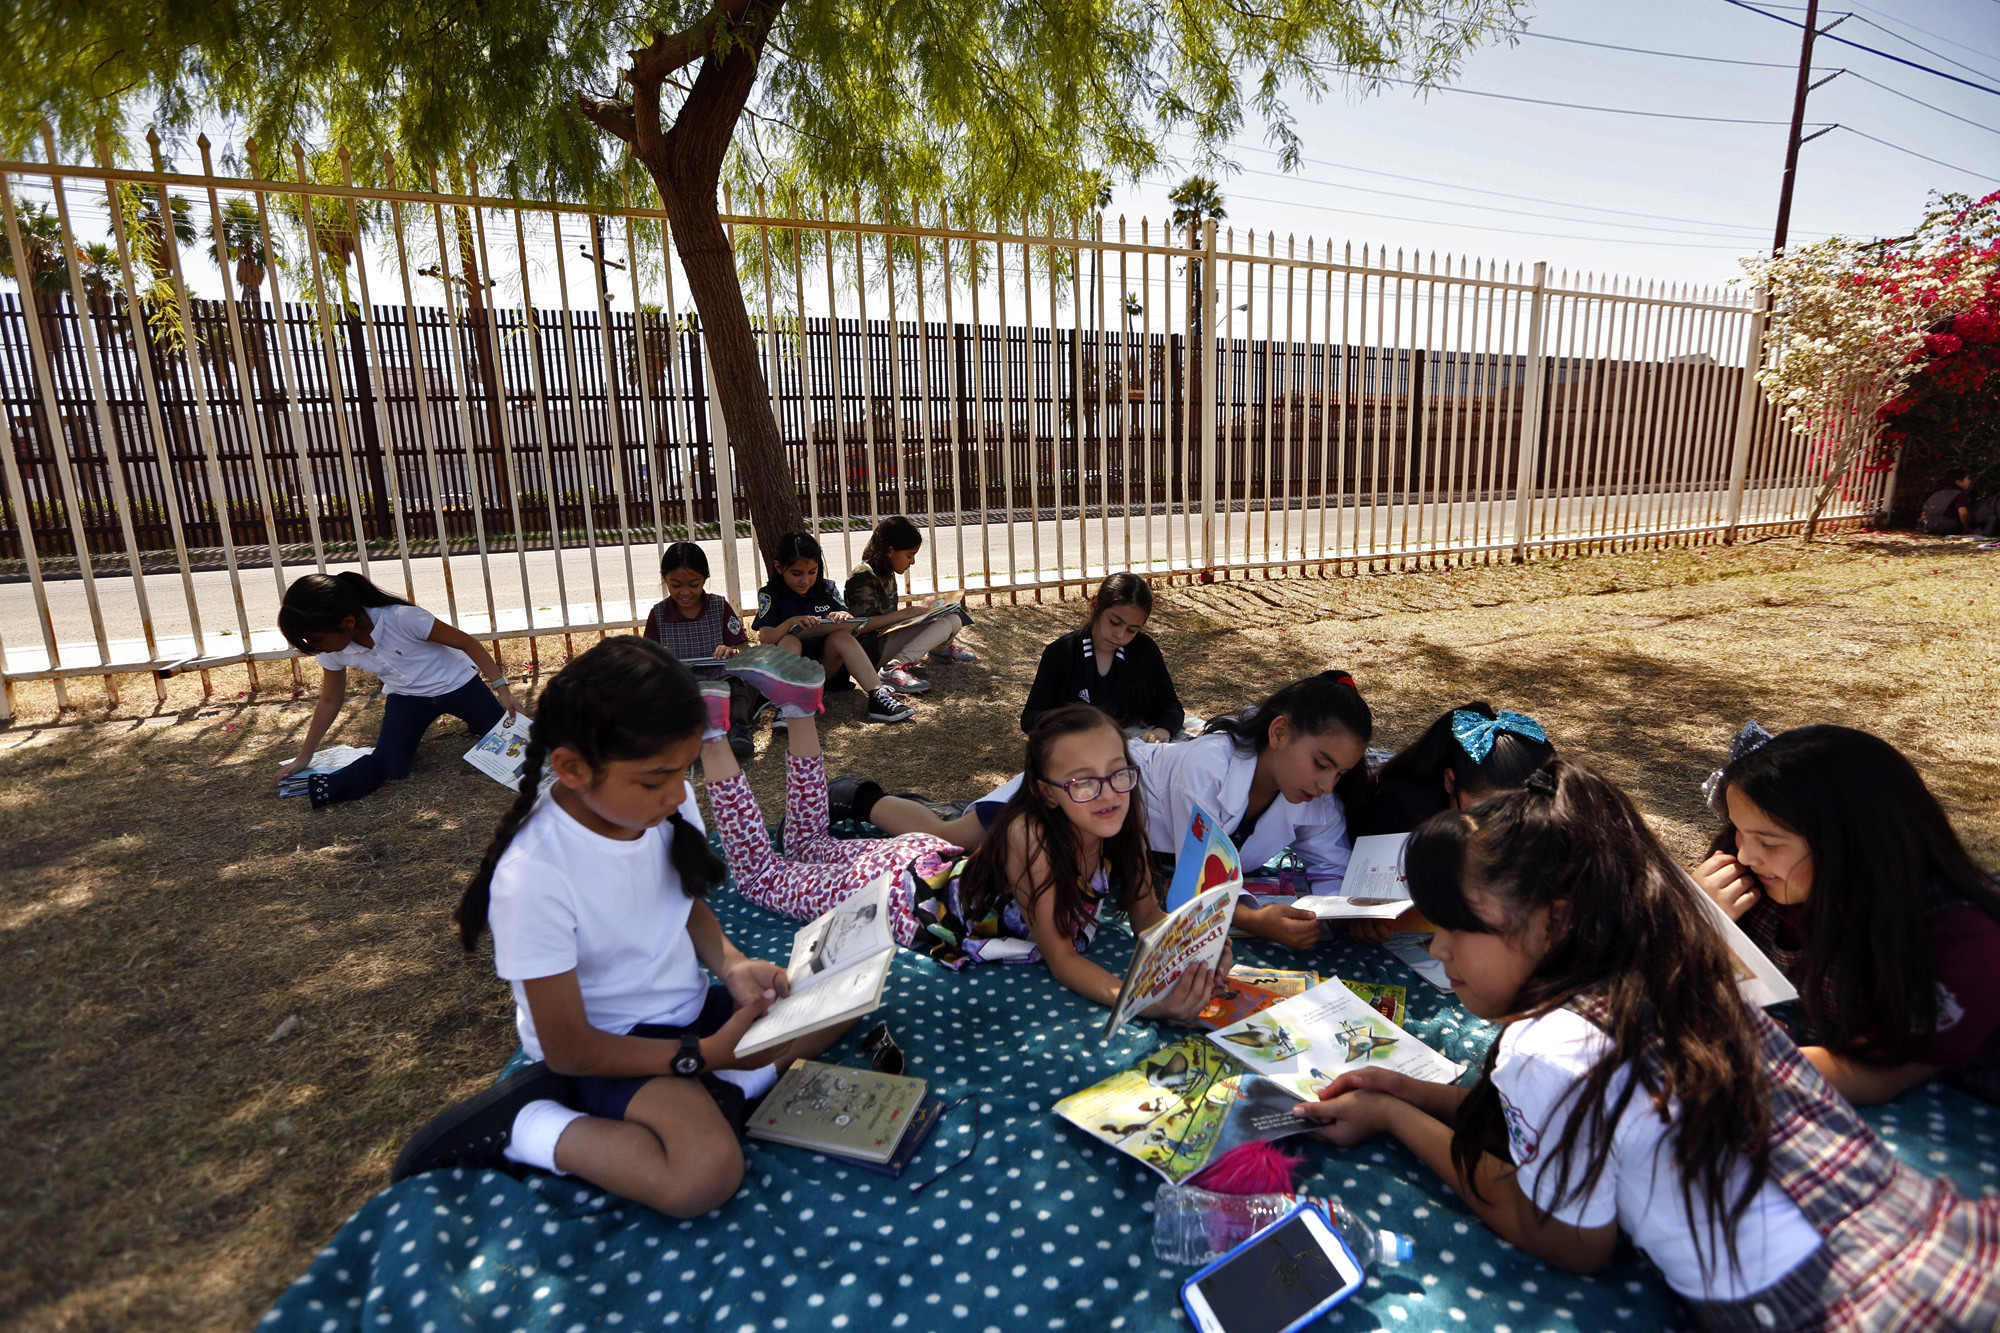 Third-graders read under the shade of tree at the Calexico Mission School against a backdrop of the border fence, in brown, in Calexico, Calif.